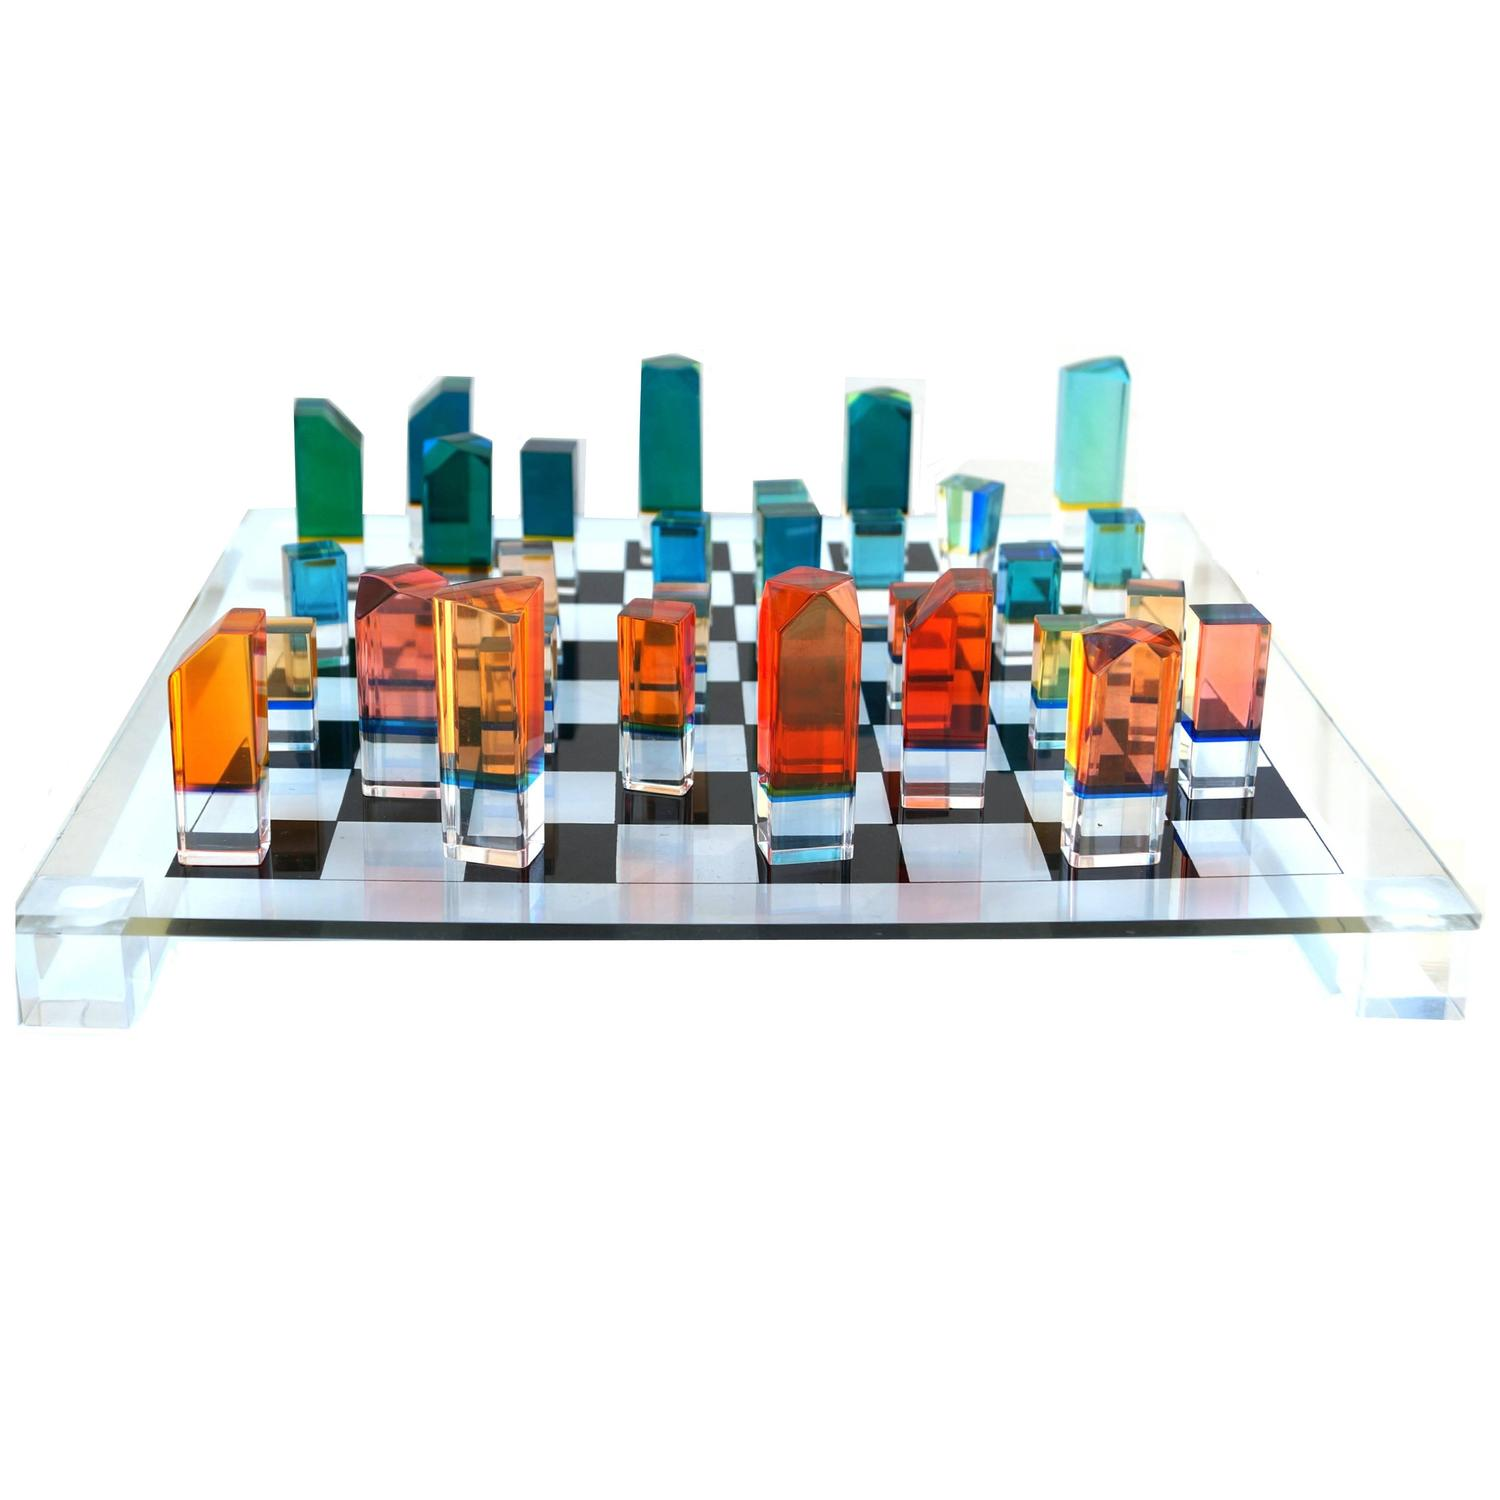 Mid Century Modern Chess Game Board Set With Lucite Pieces